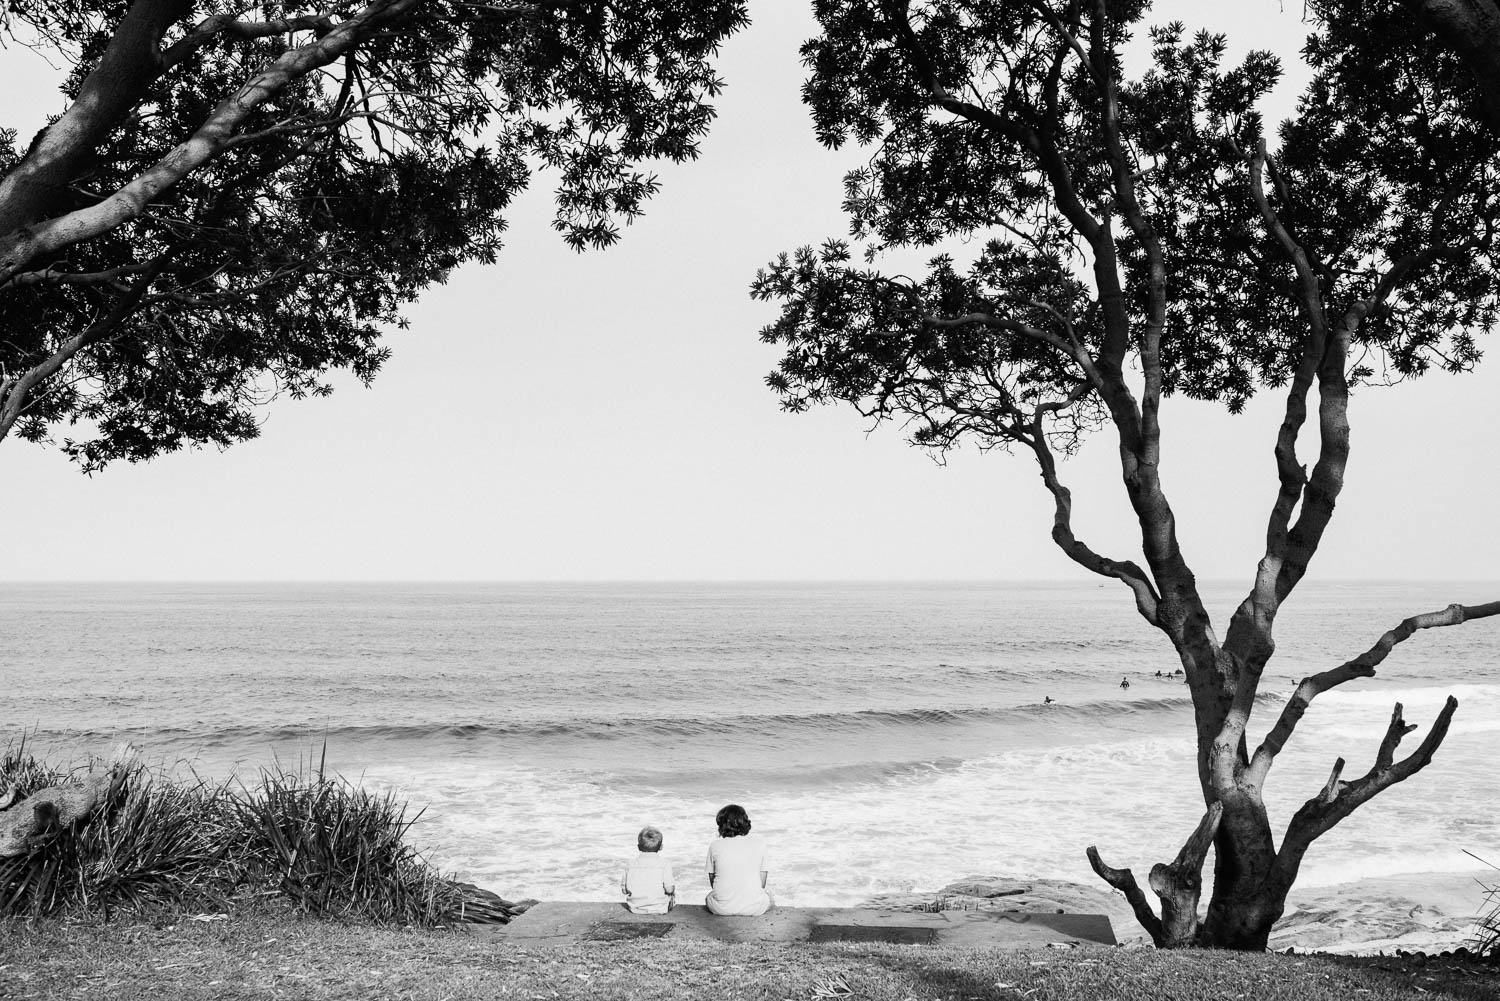 black and white image of two young brothers with back to camera sitting on grass under trees watching surfers in ocean in the distance in the Sutherland Shire Sydney